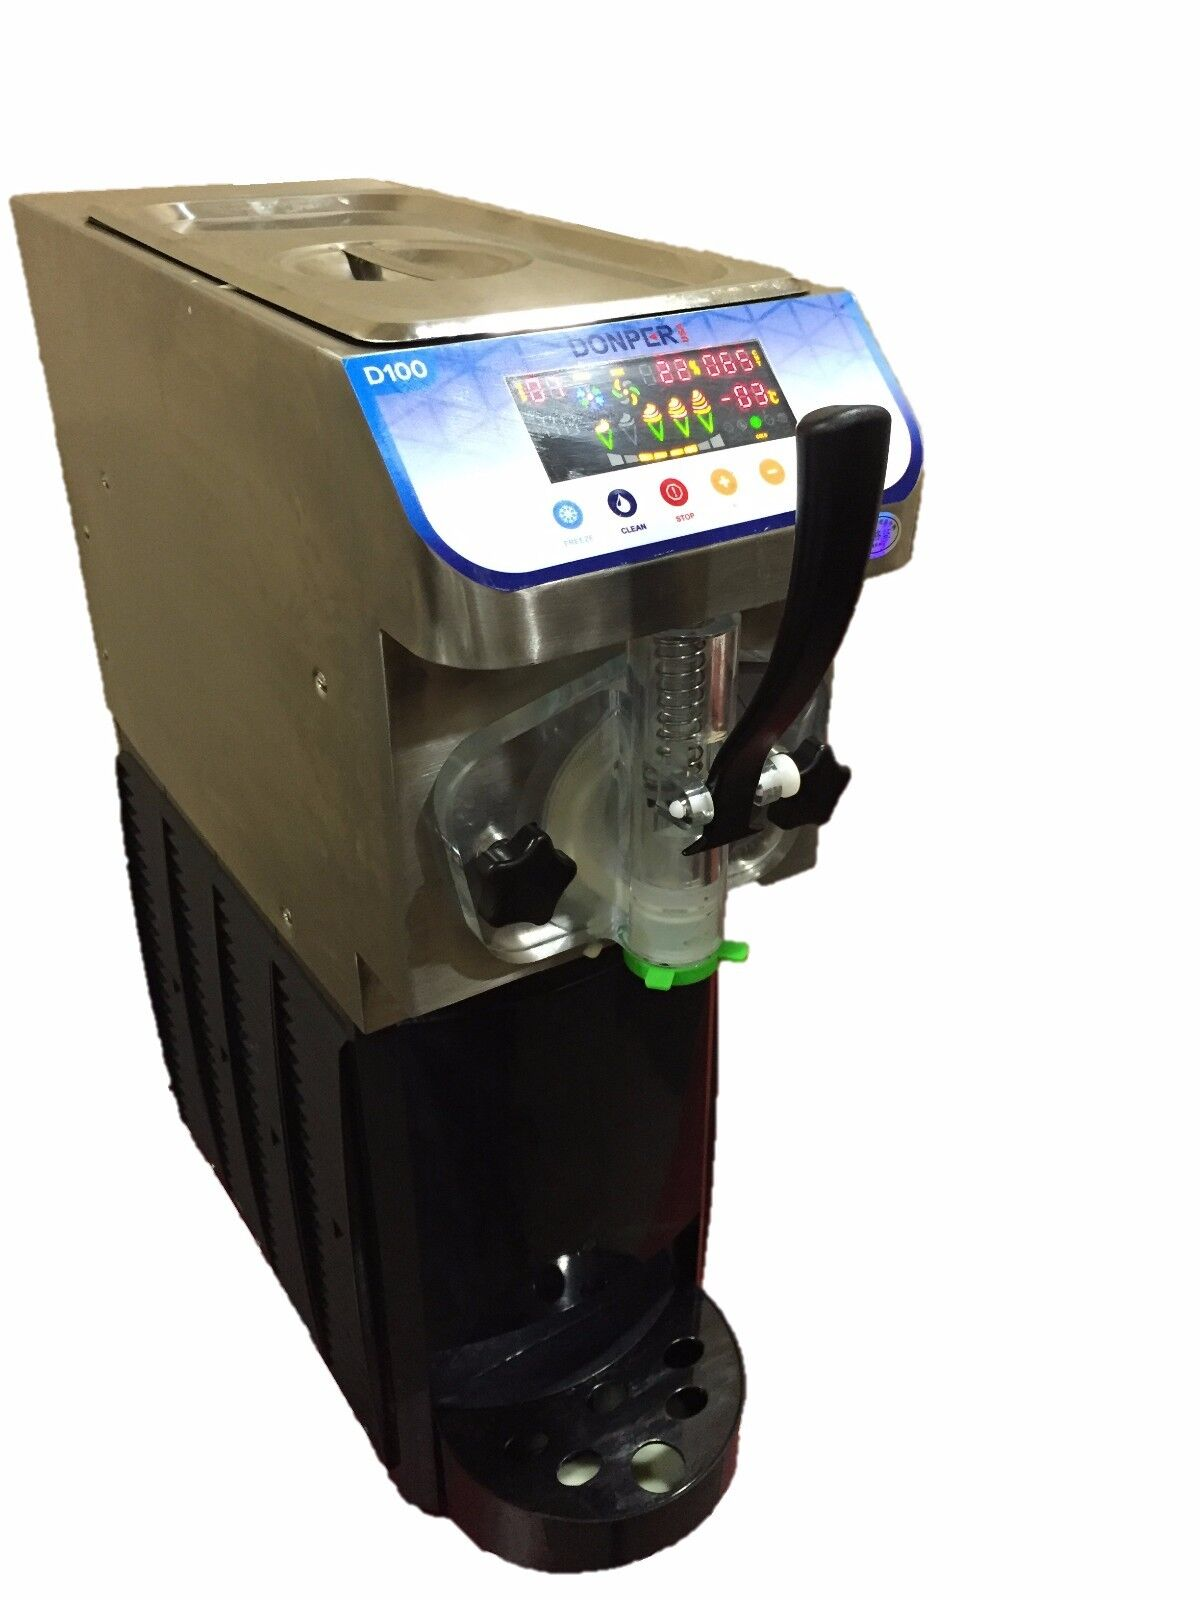 New Soft Serve Ice Cream Frozen Yogurt Machine